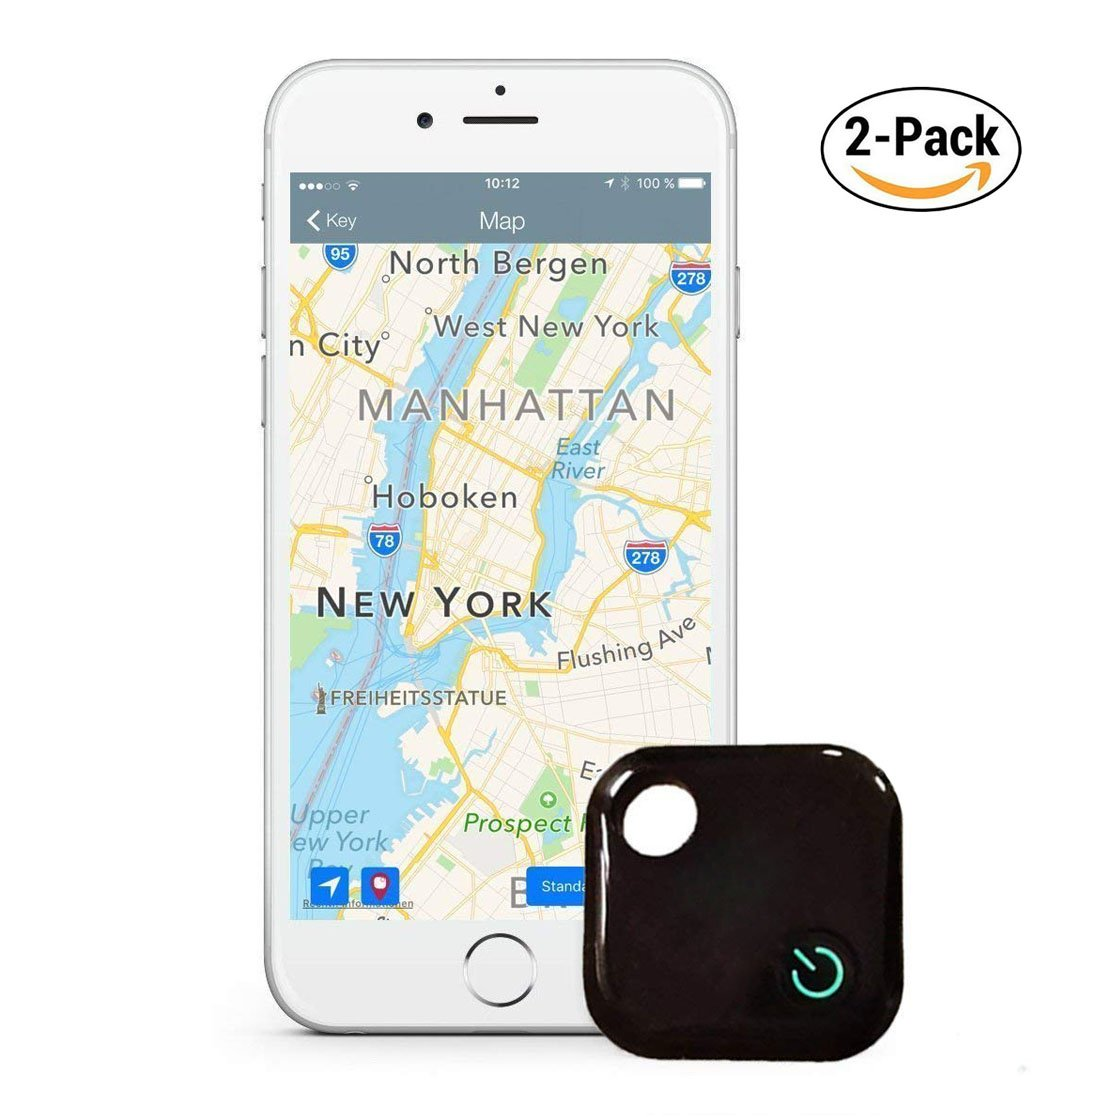 Komire Key Finder, Phone Finder Smart Mini Bluetooth Tracker Locator for Keys Phone Wallet Bag Luggage, Anti-Lost Device with APP for iPhone/Android, Support Cell Phone Self Shutter/Record (2-Pack)